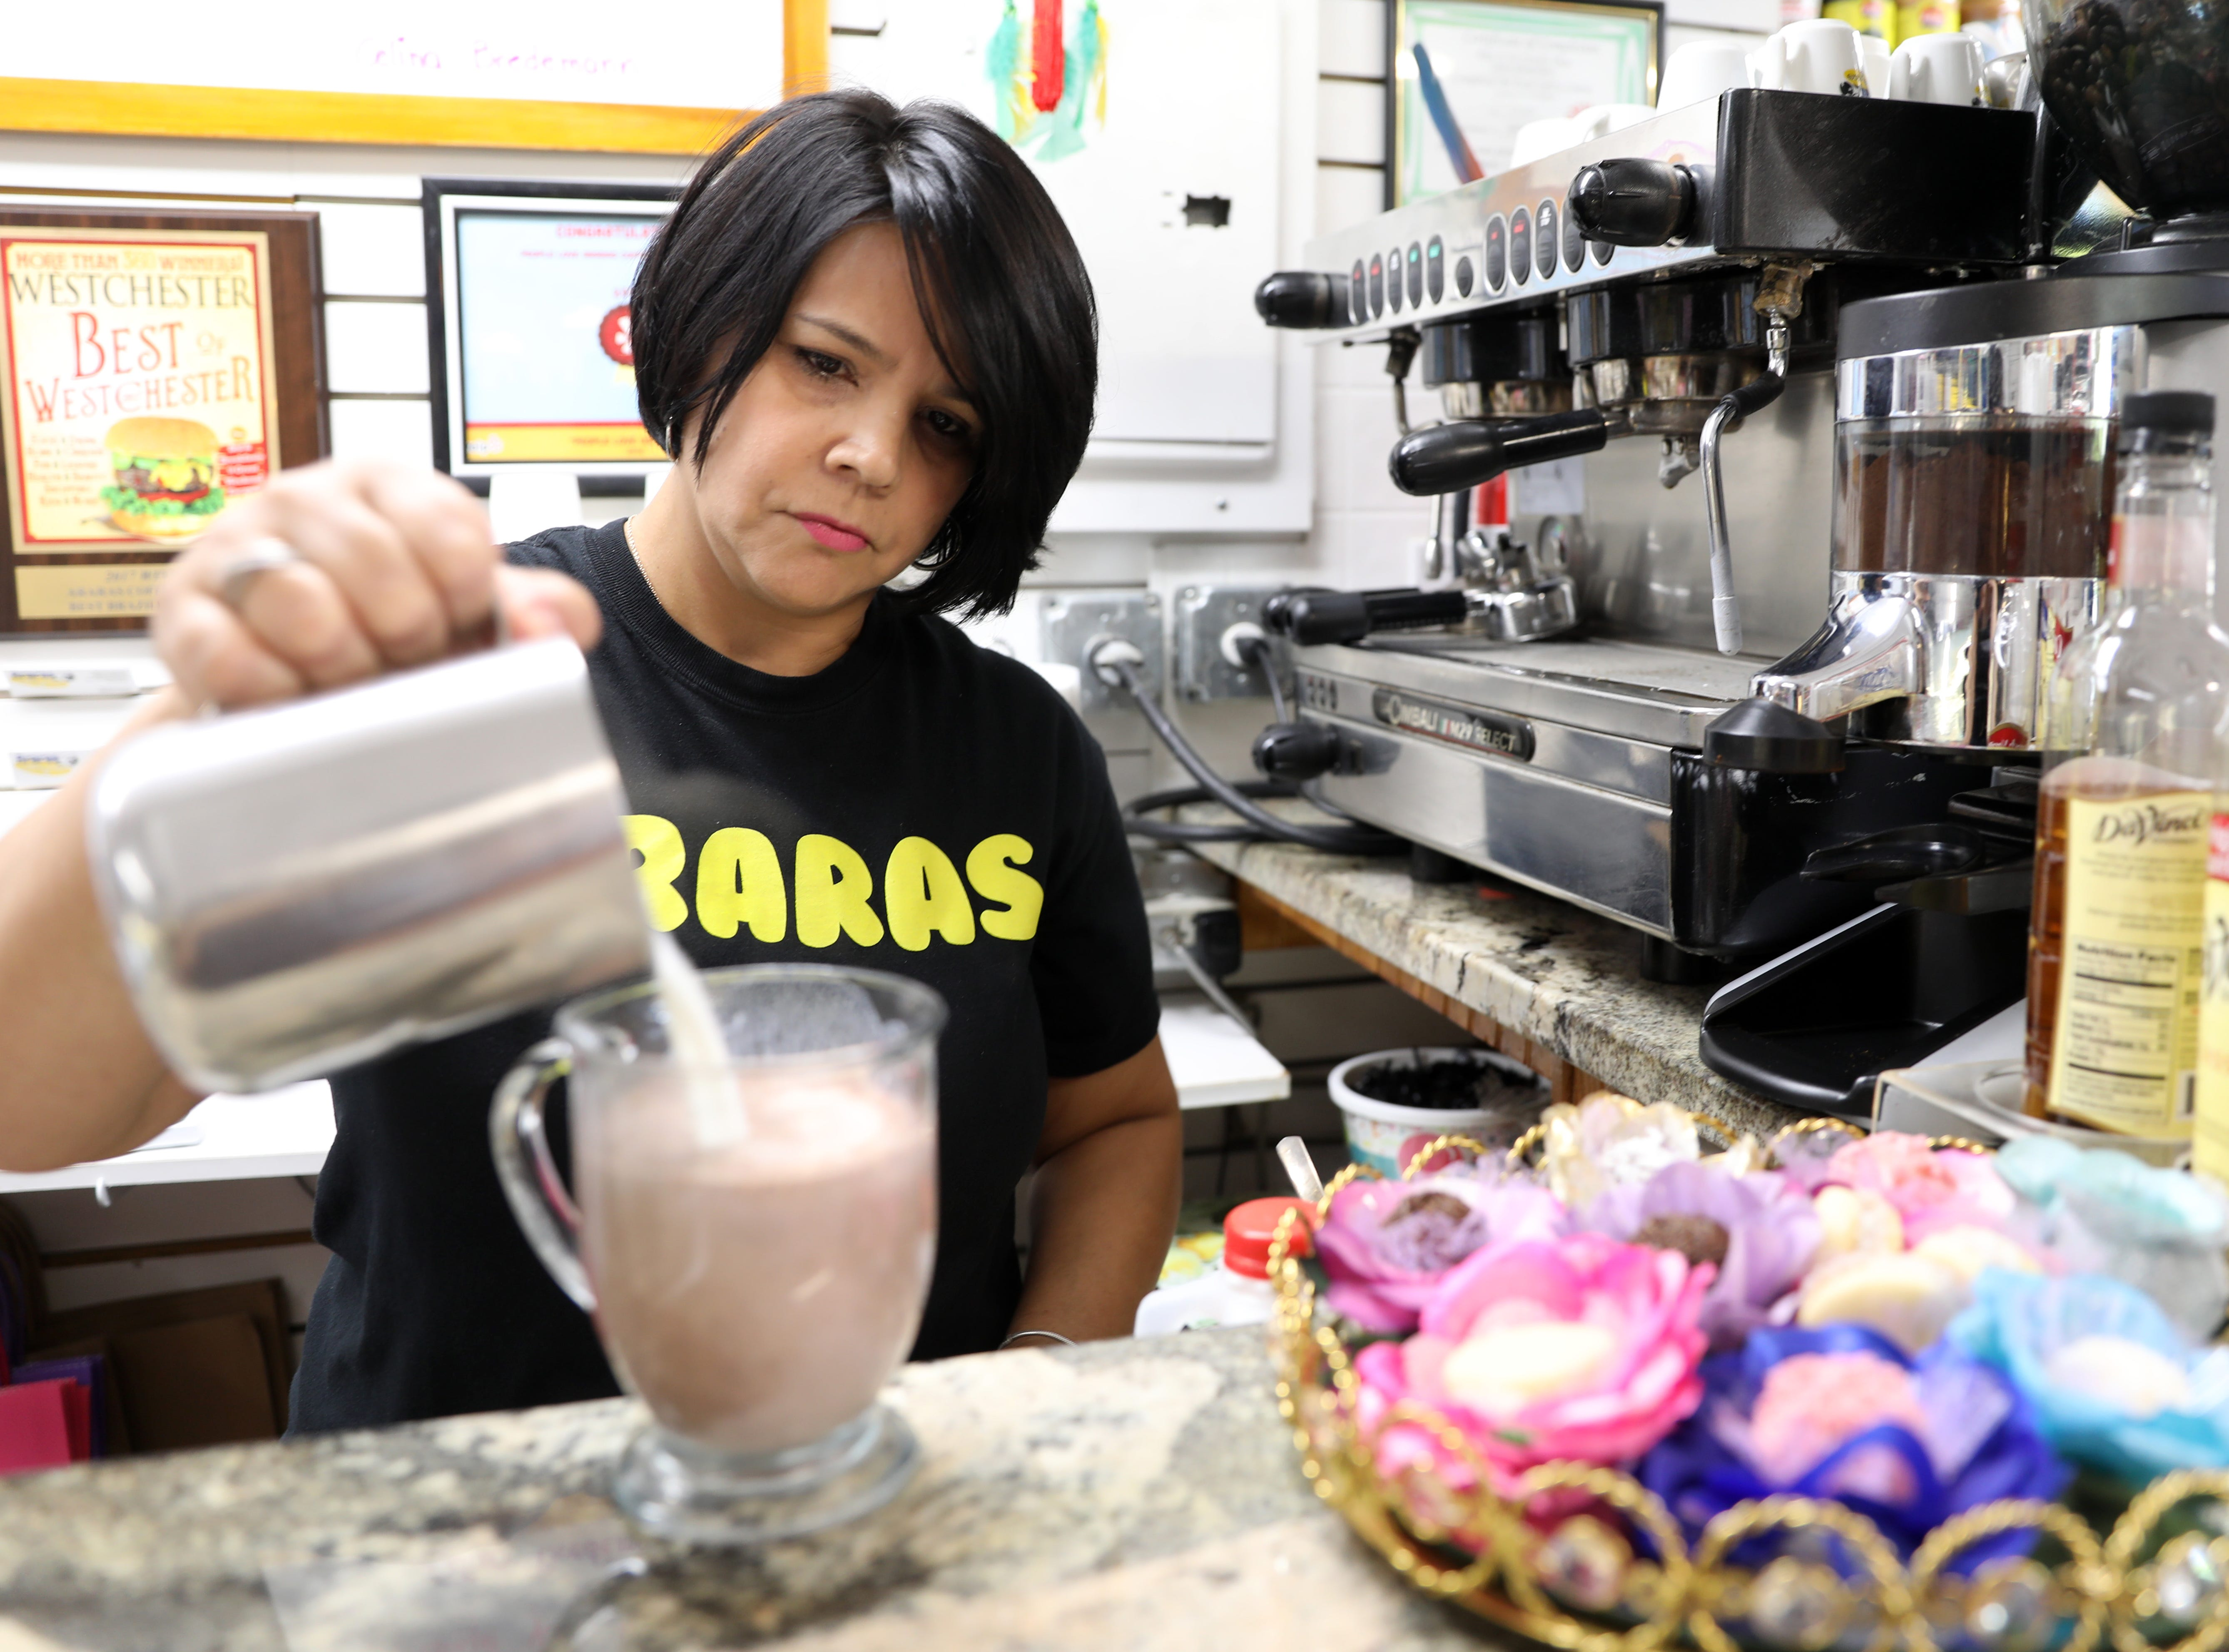 Co-owner Celina Bredemann makes hot chocolate at Araras Coffee & More, where they sell Brazilian coffee and treats in White Plains, July 31, 2018.